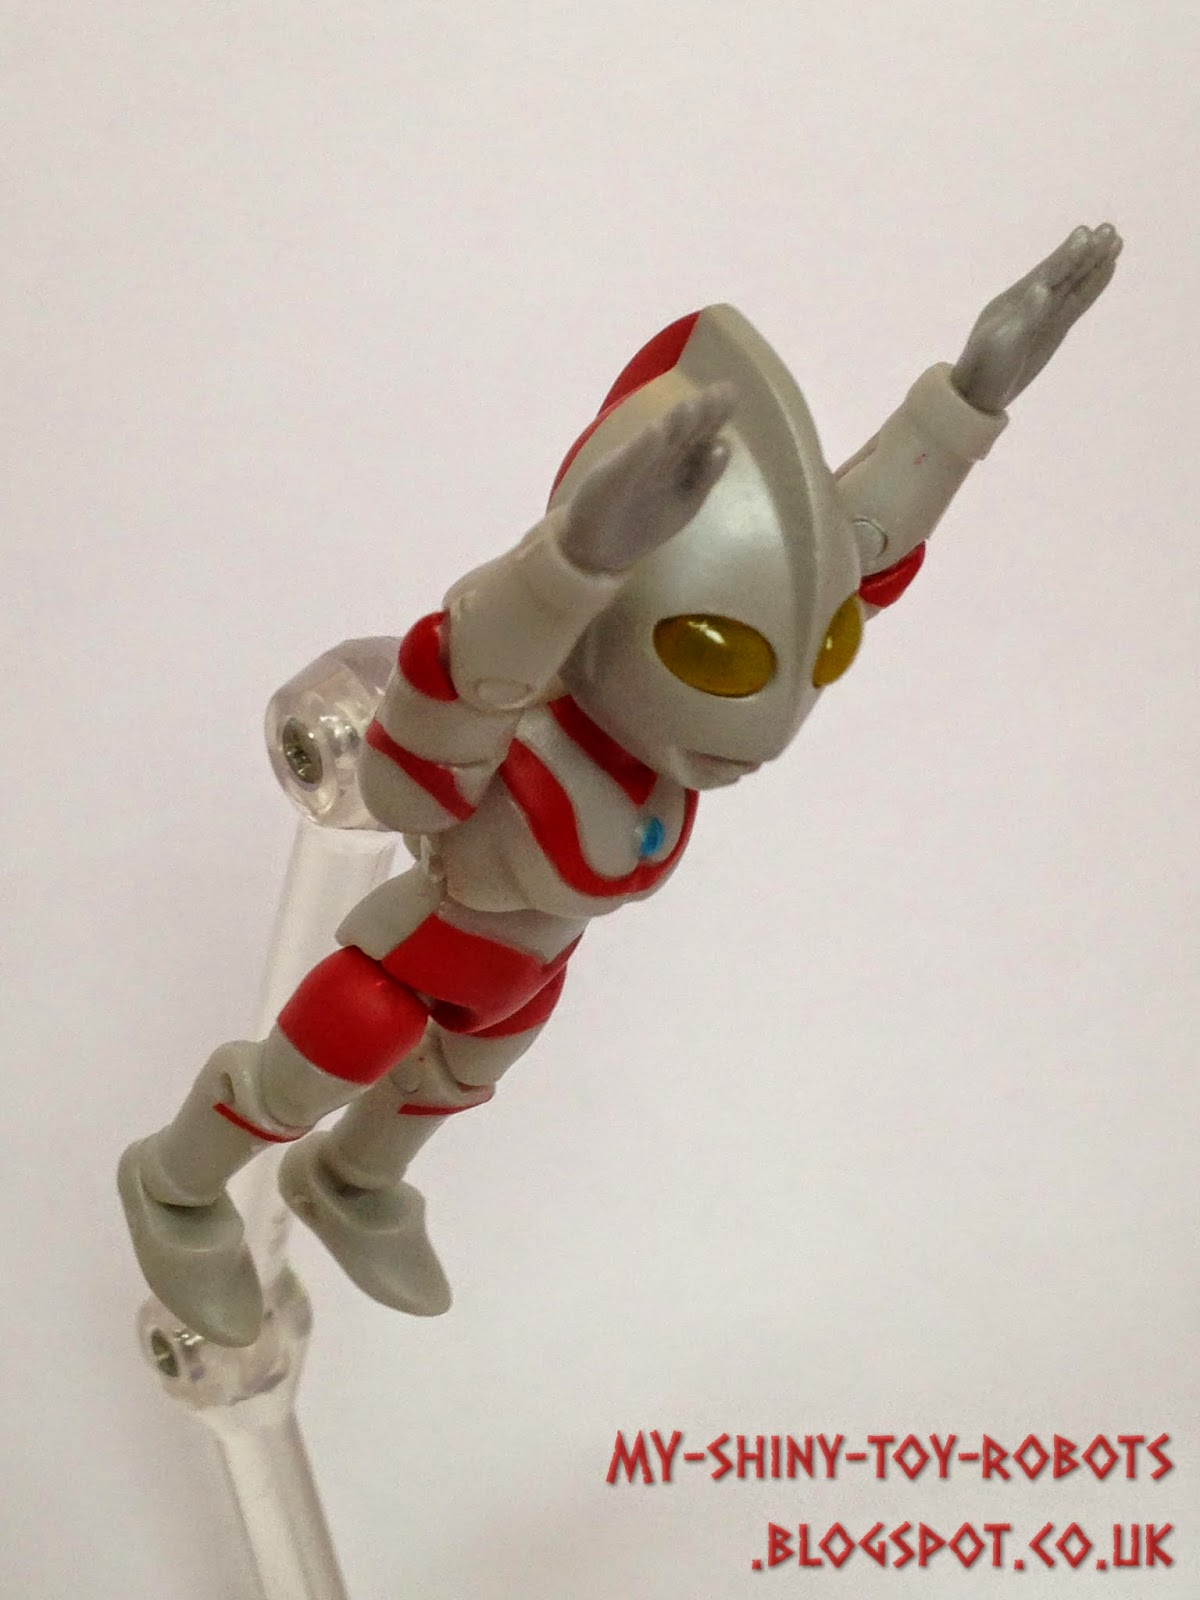 Ultraman takes flight